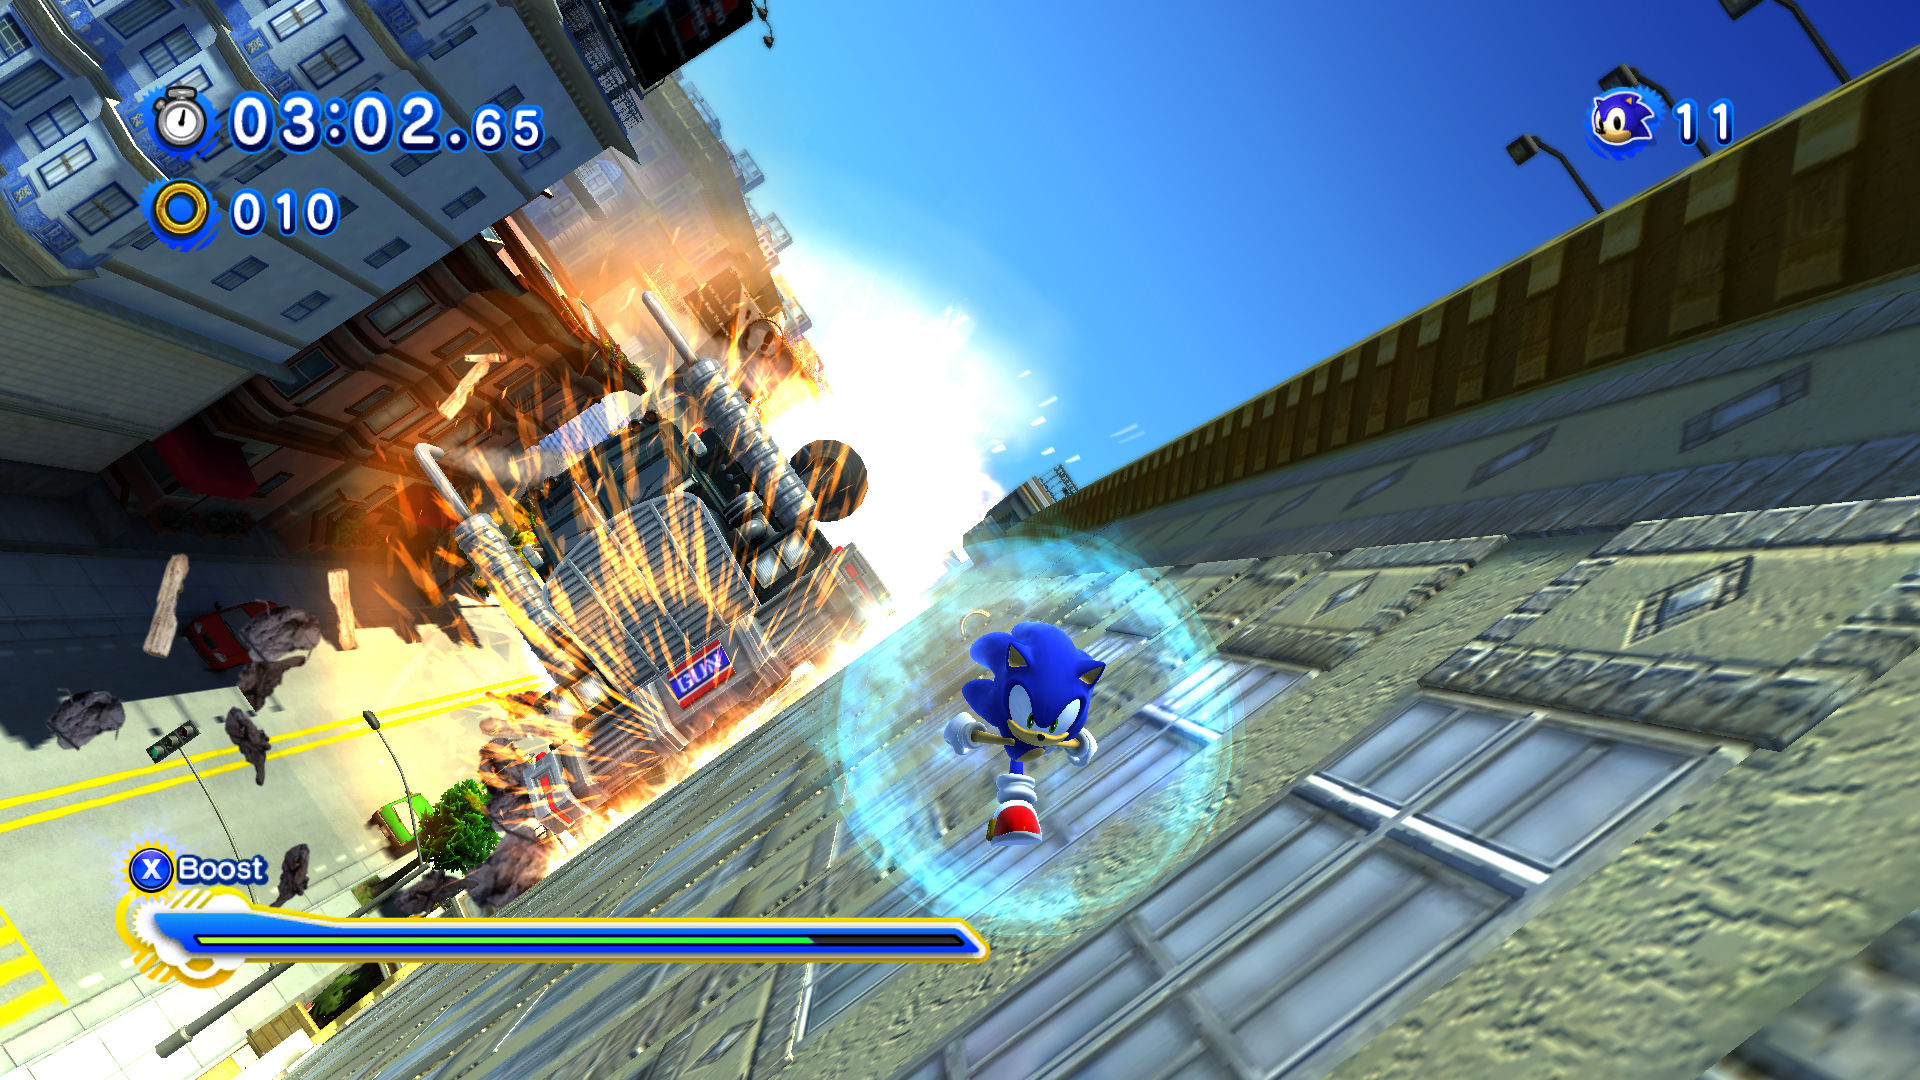 Sonic generations demo available now for ps3 and xbox 360.